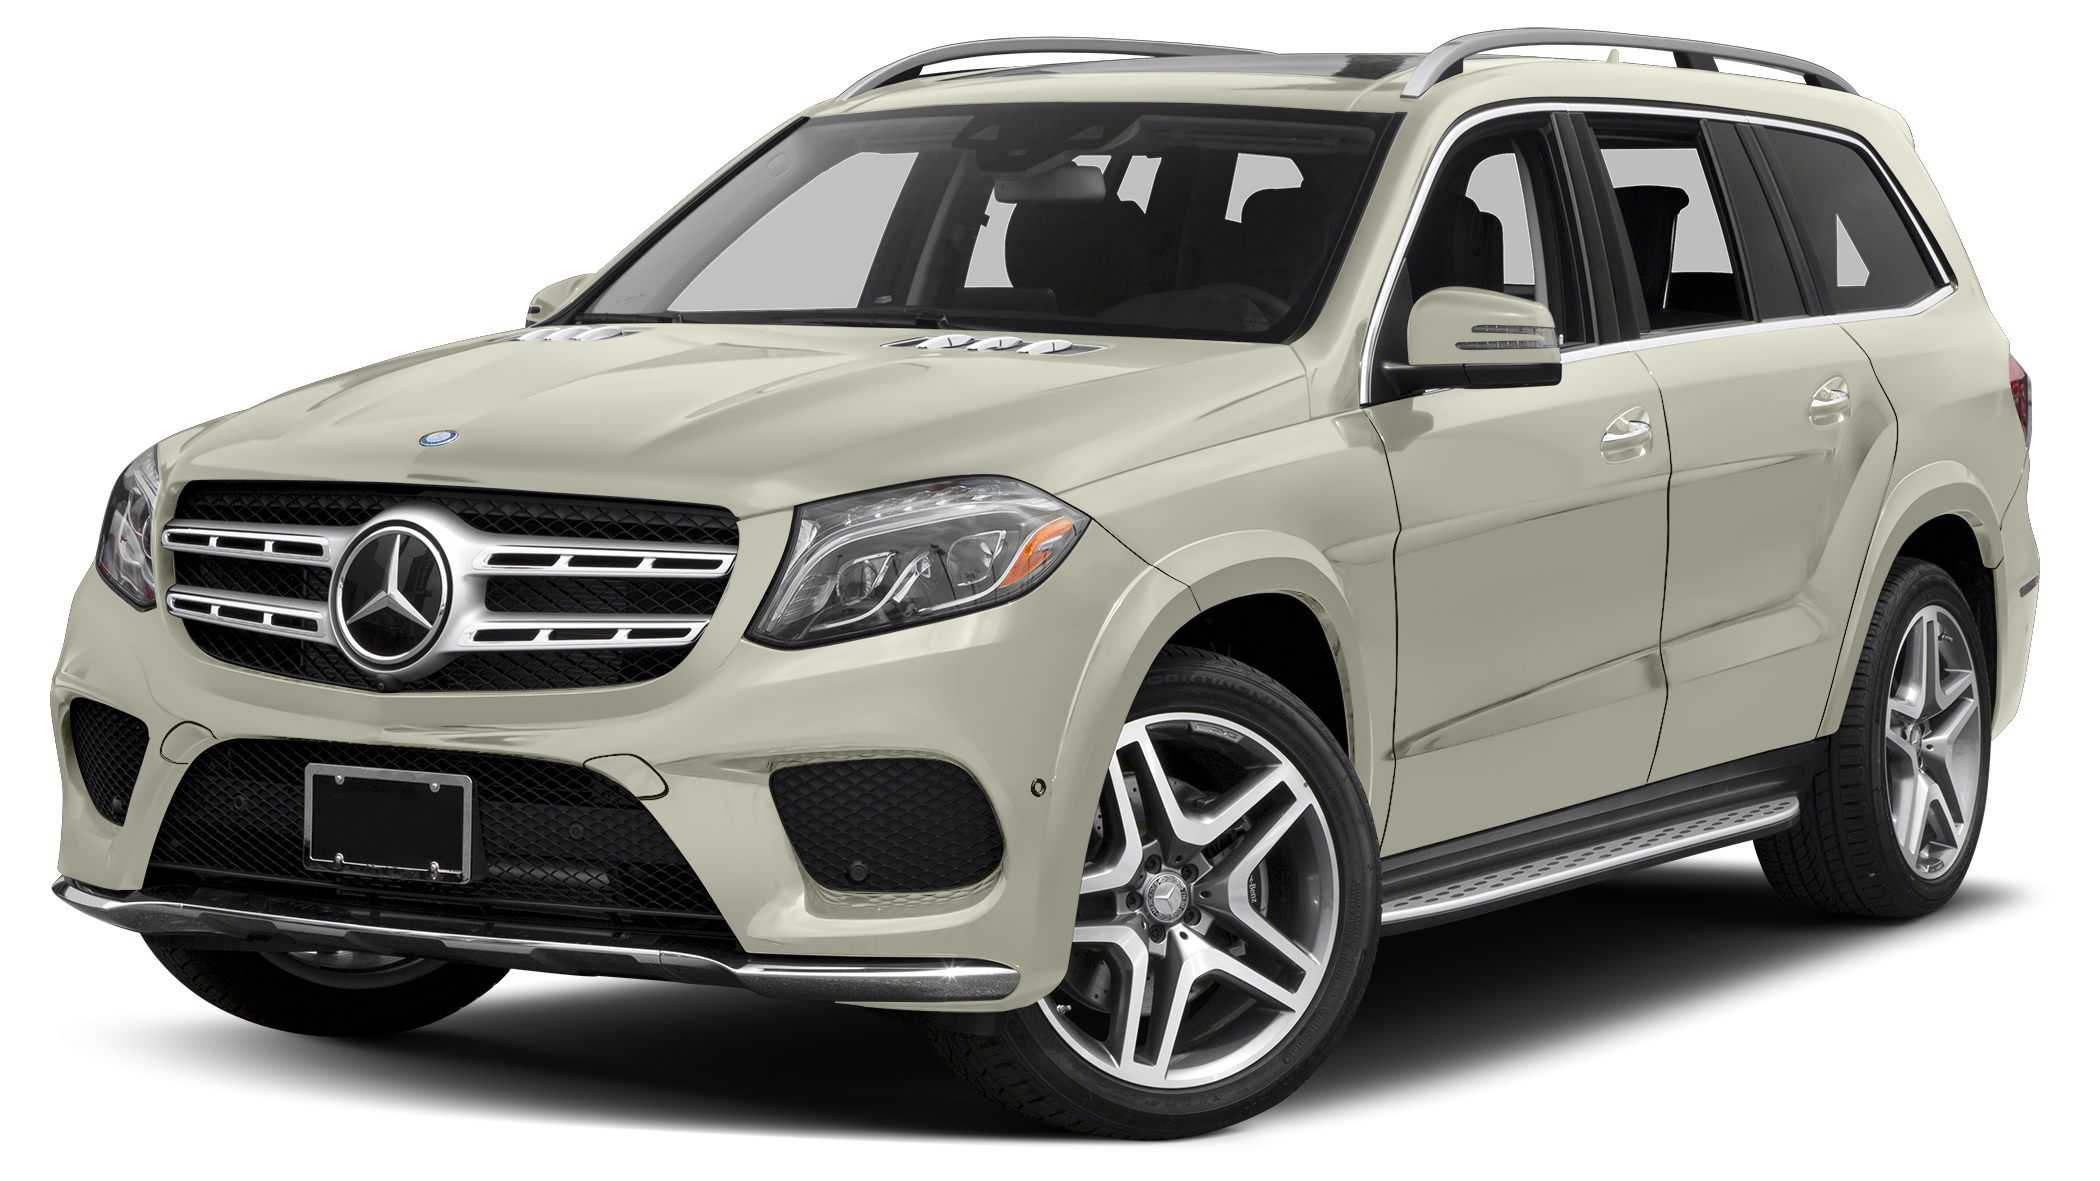 2017 mercedes benz gls 550 for sale in bayside ny for Mercedes benz bayside